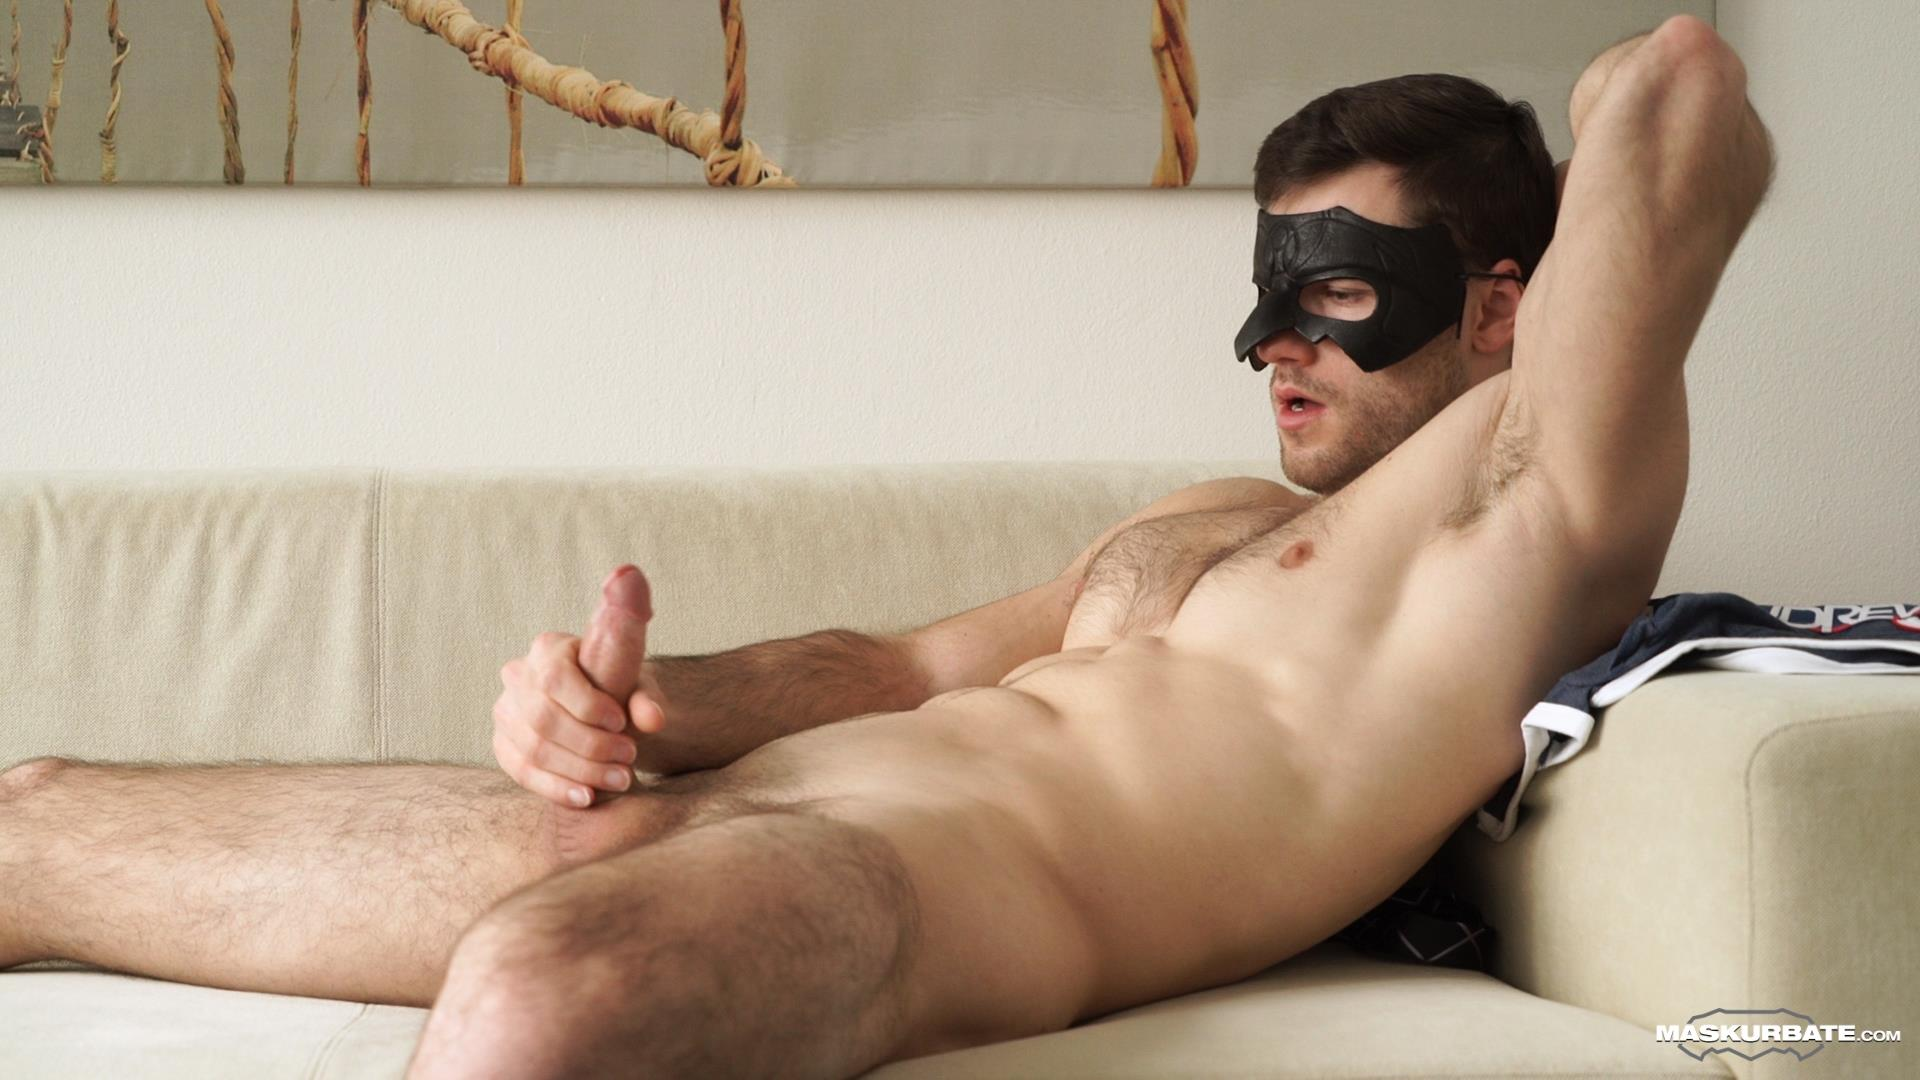 Maskurbate-Sam-Cuthan-Straight-Naked-Hairy-Muscle-Guy-Jerk-off-10 Straight Masked Hairy Muscle Hunk Strokes His Big Uncut Cock